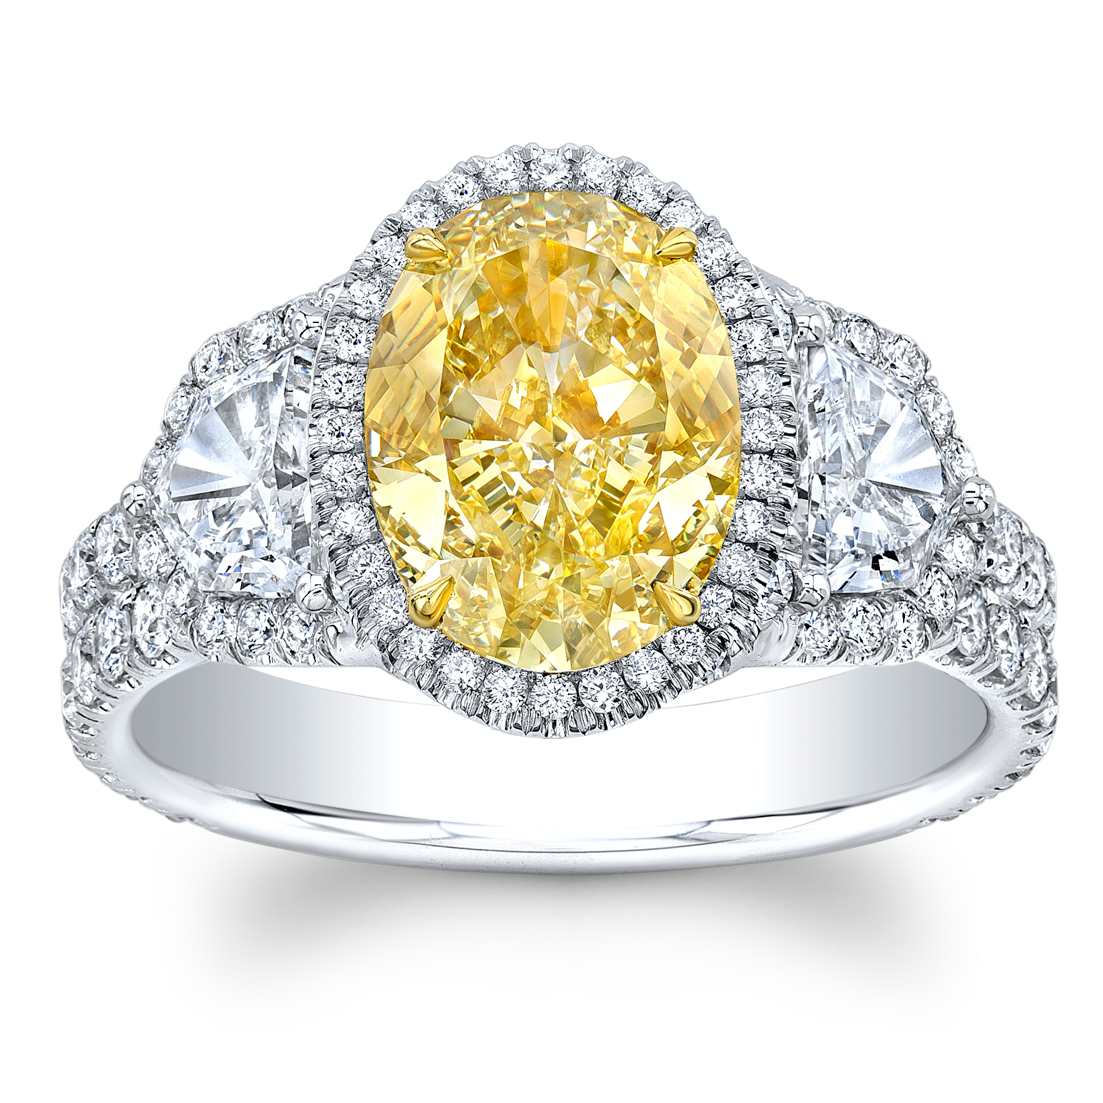 1.32 Carat Oval Diamond Ring Fancy Yellow